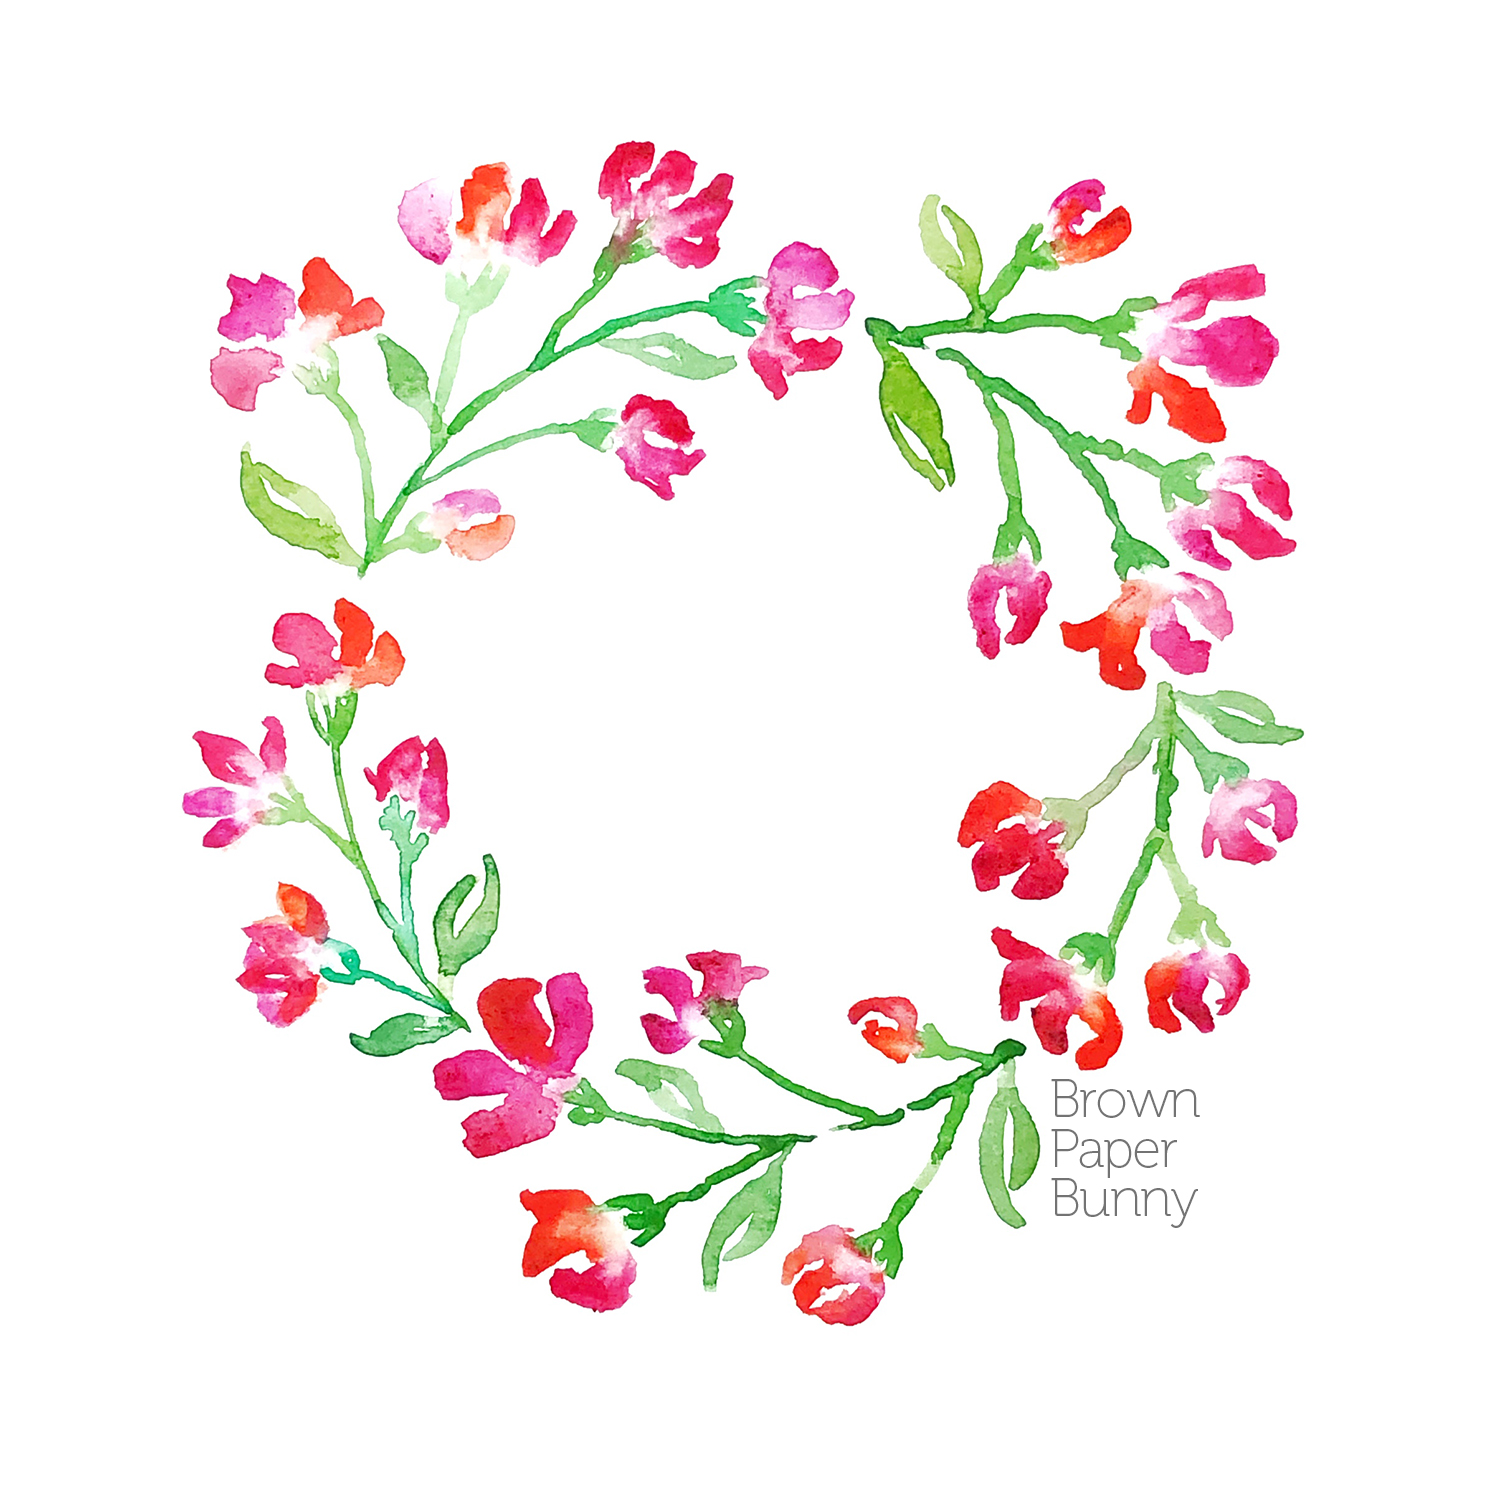 Floral wreath, commissioned watercolor painting.